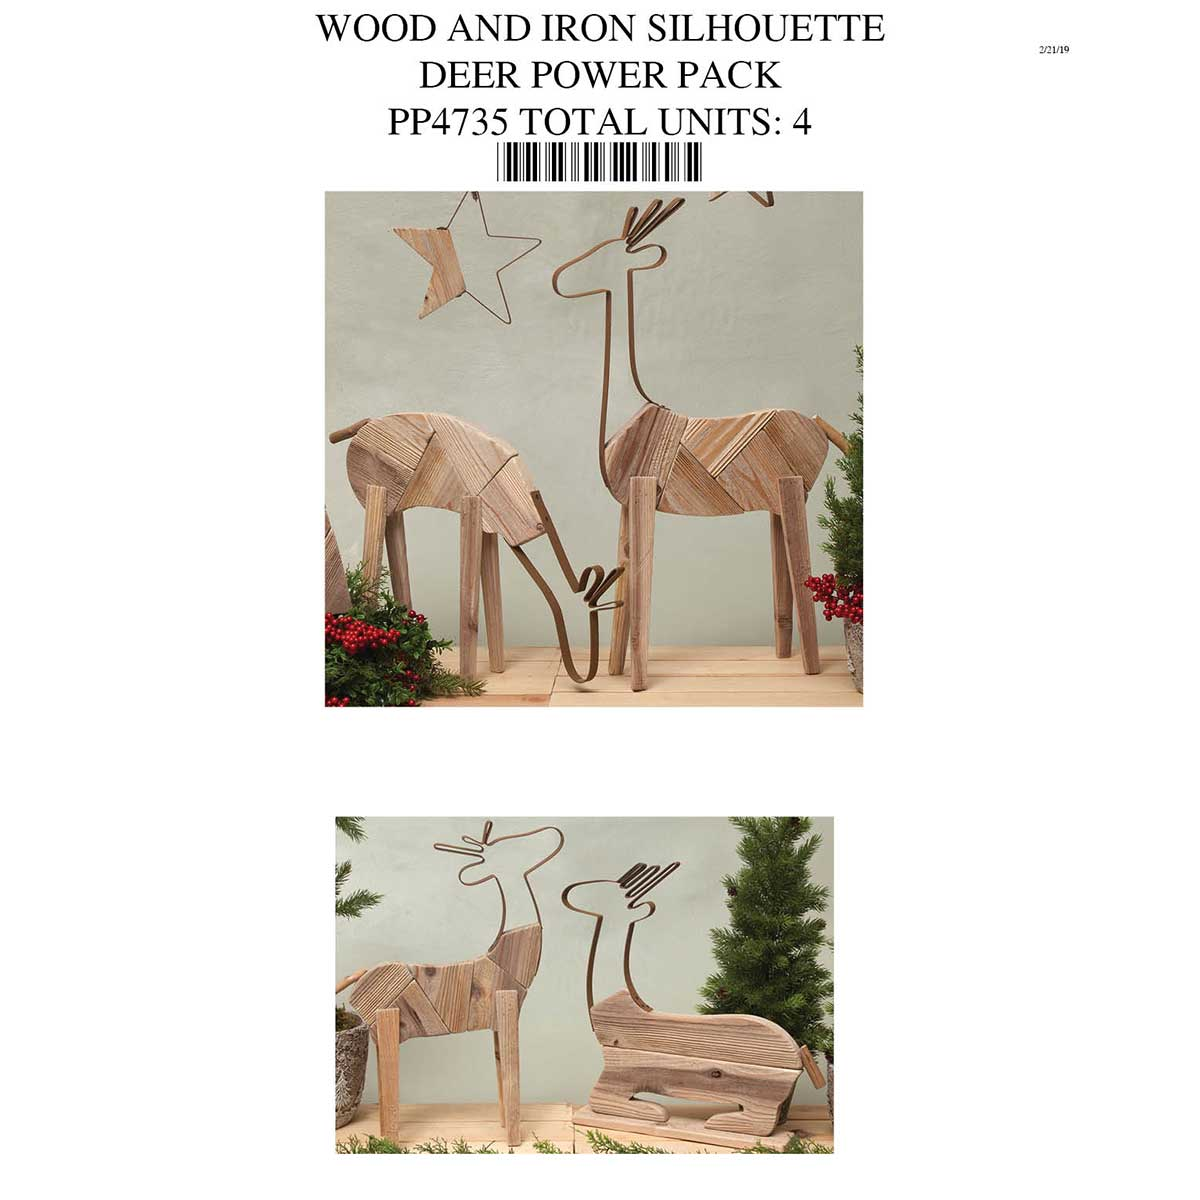 WOOD & IRON DEER POWER PACK PP4735